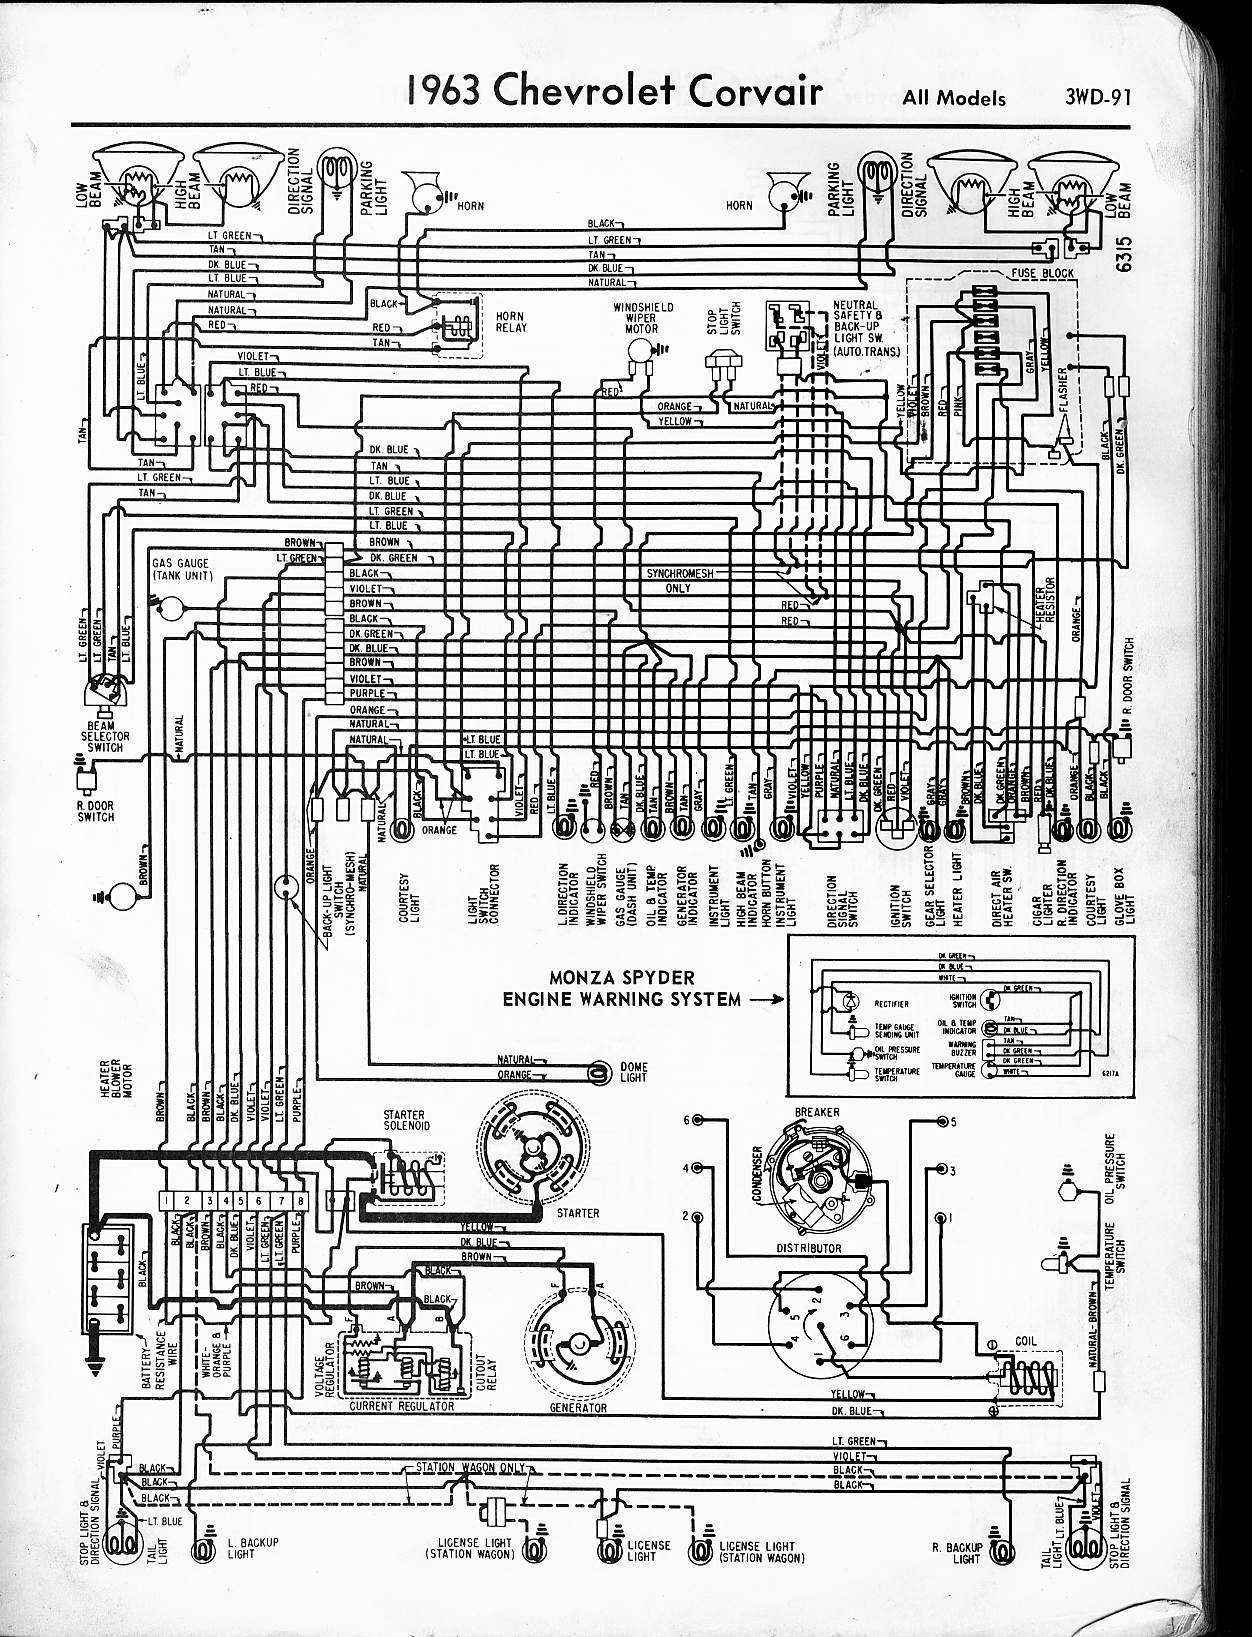 57 65 Chevy Wiring Diagrams Wiring-Diagram 1965 Corvair Corsa 1965 Corvair  Wiring Diagram